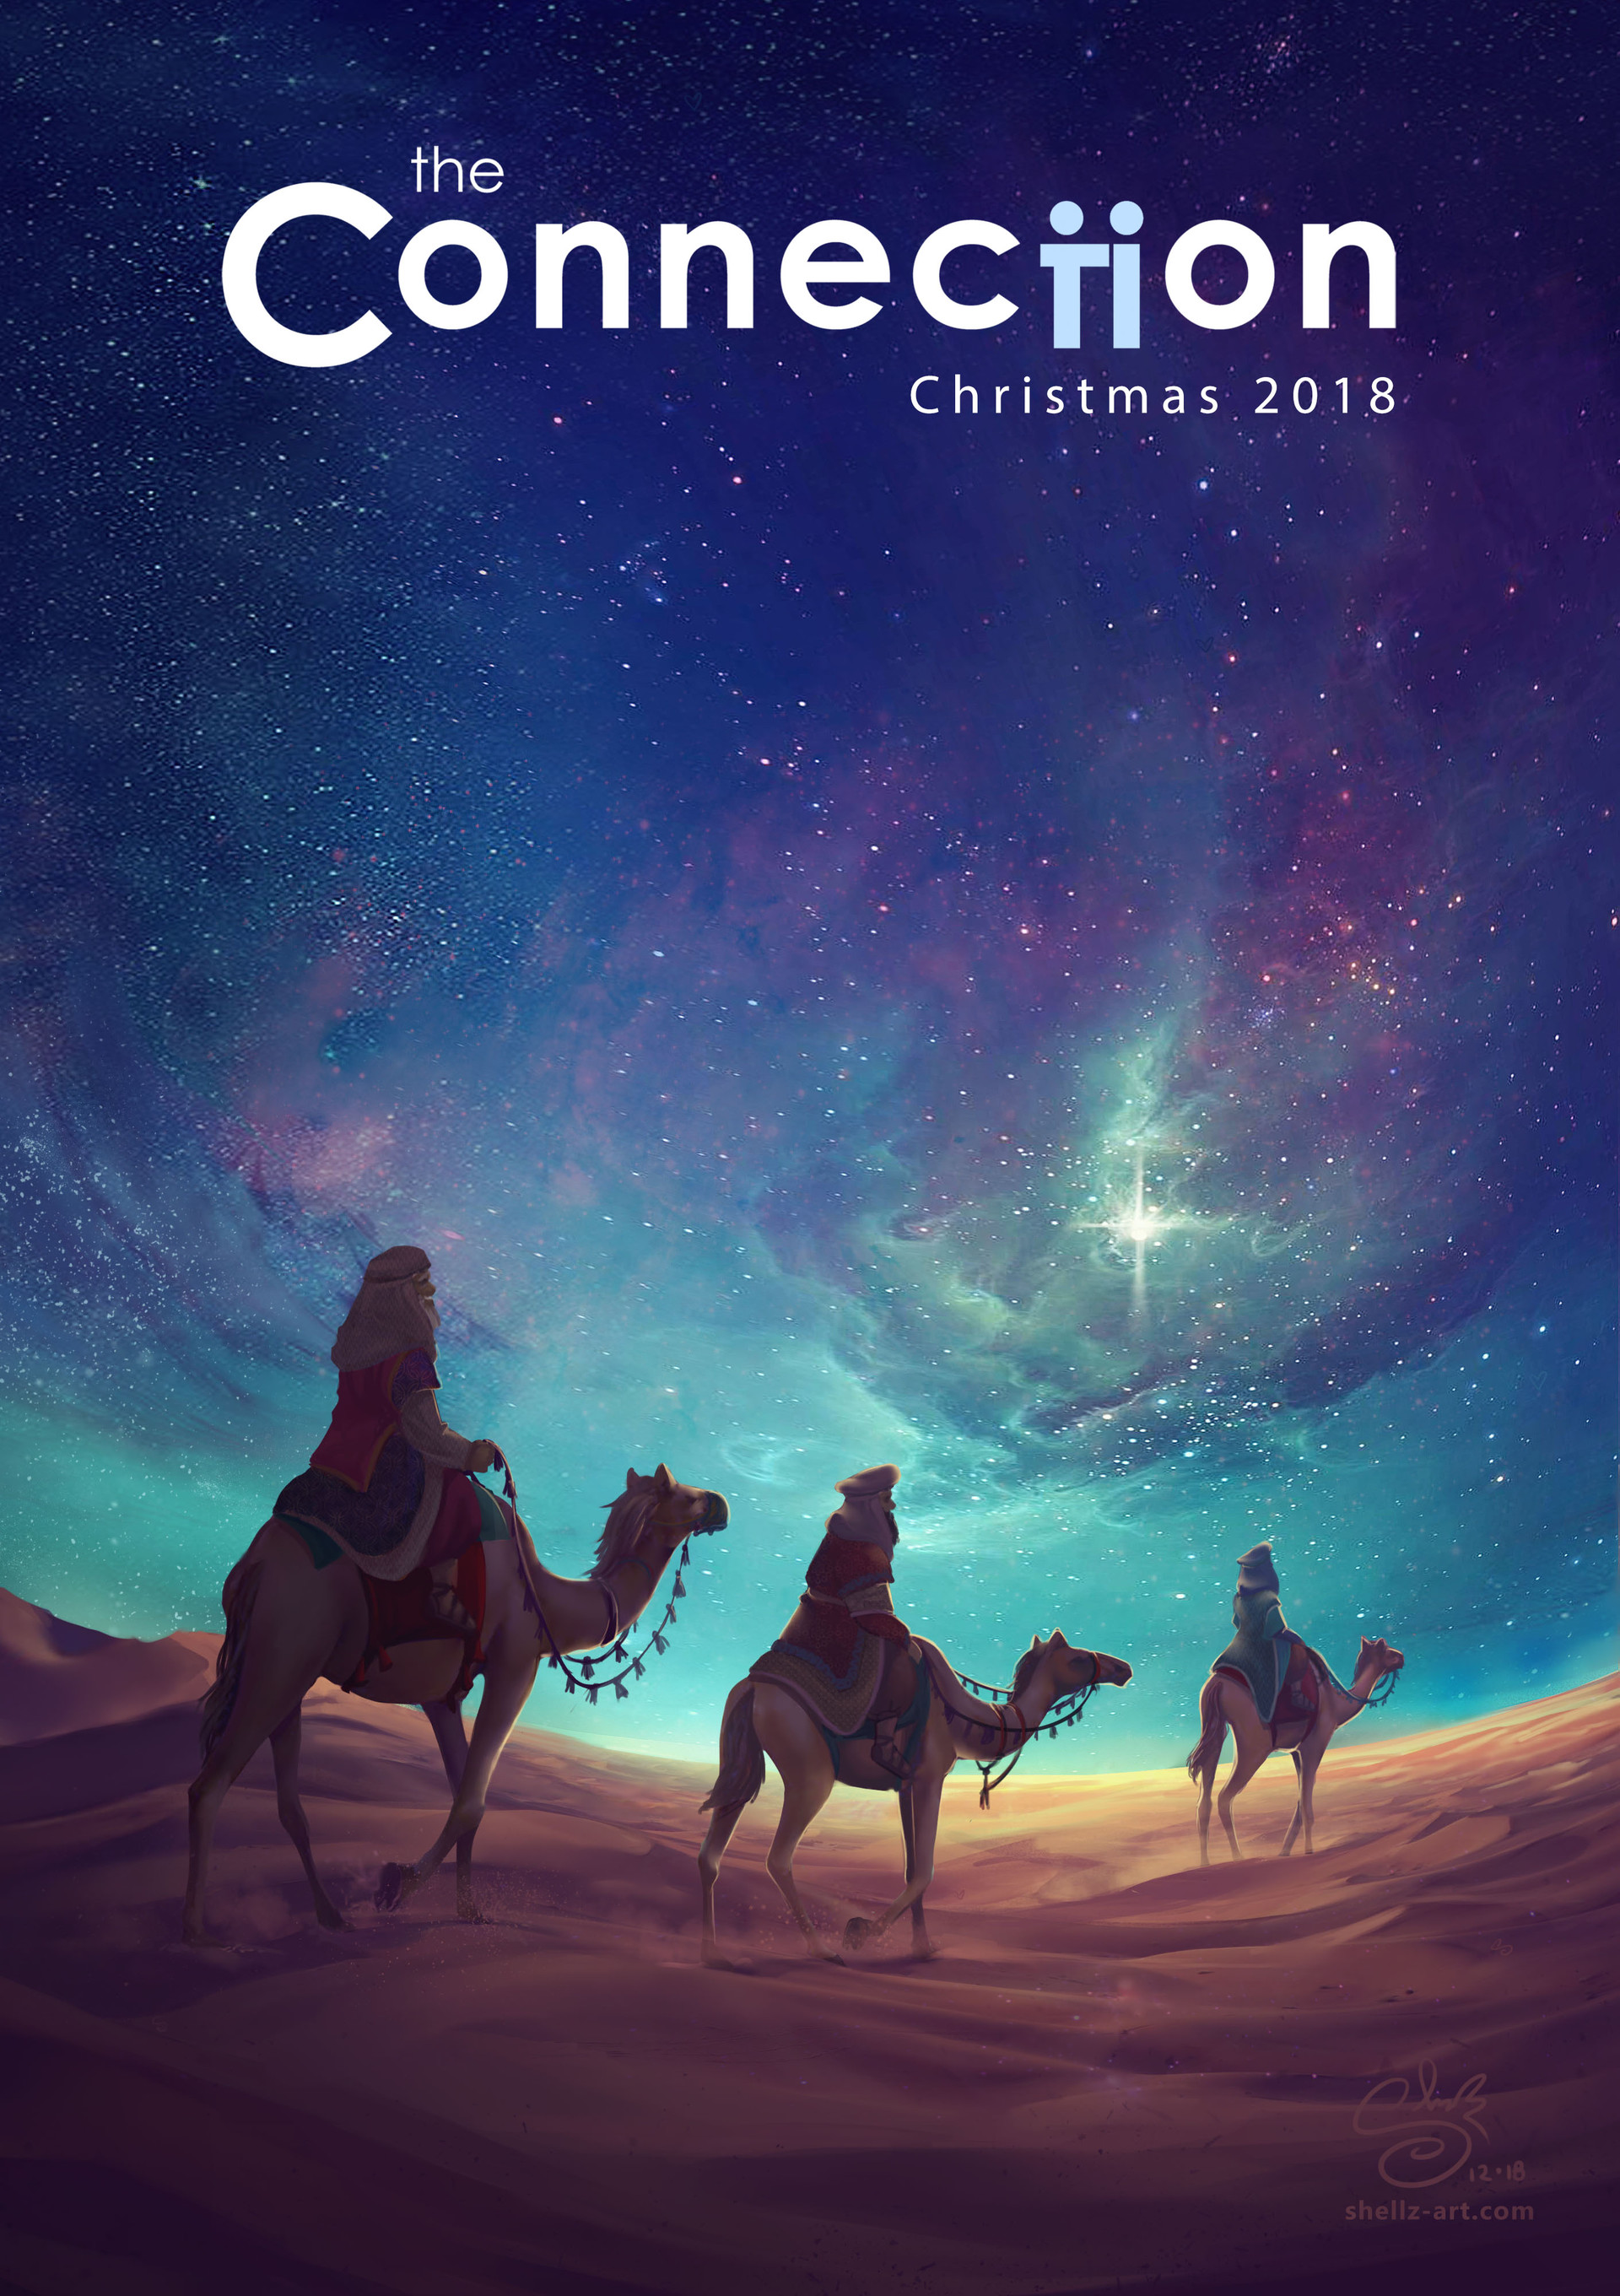 Shellz art christmas three wise men cover front title sig